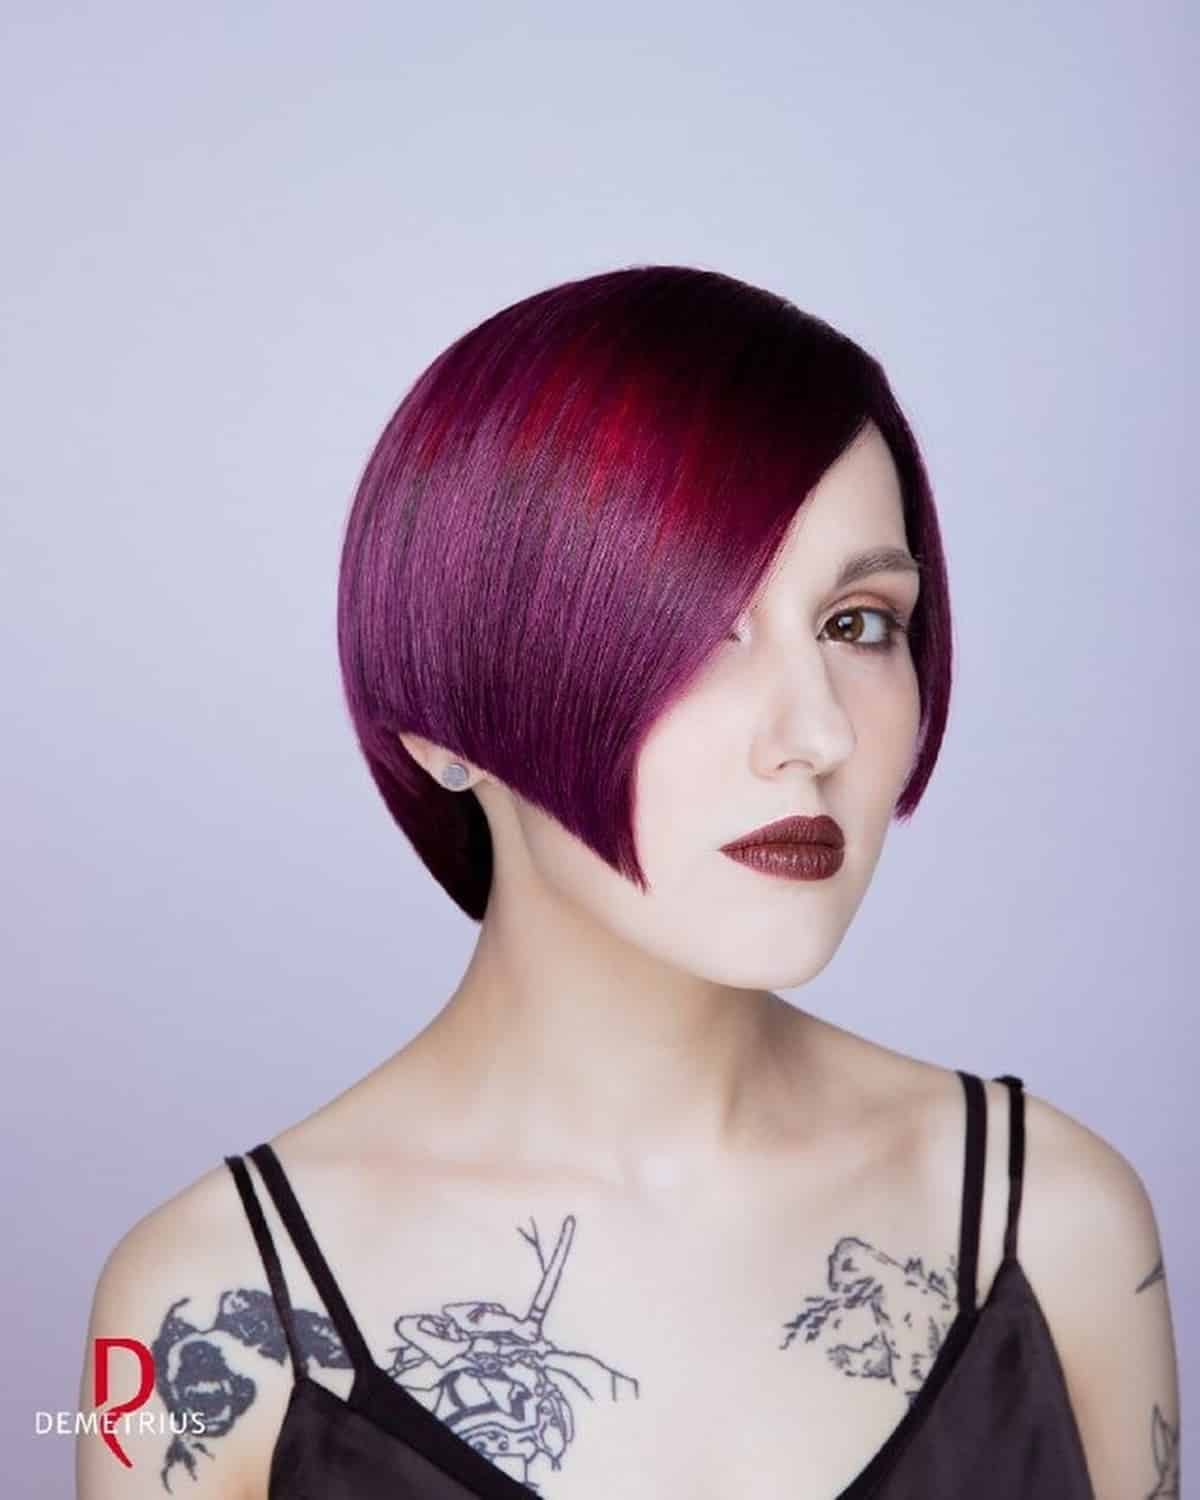 23 Edgy Short Haircuts for Women Wanting a Bold, New Style in 2021